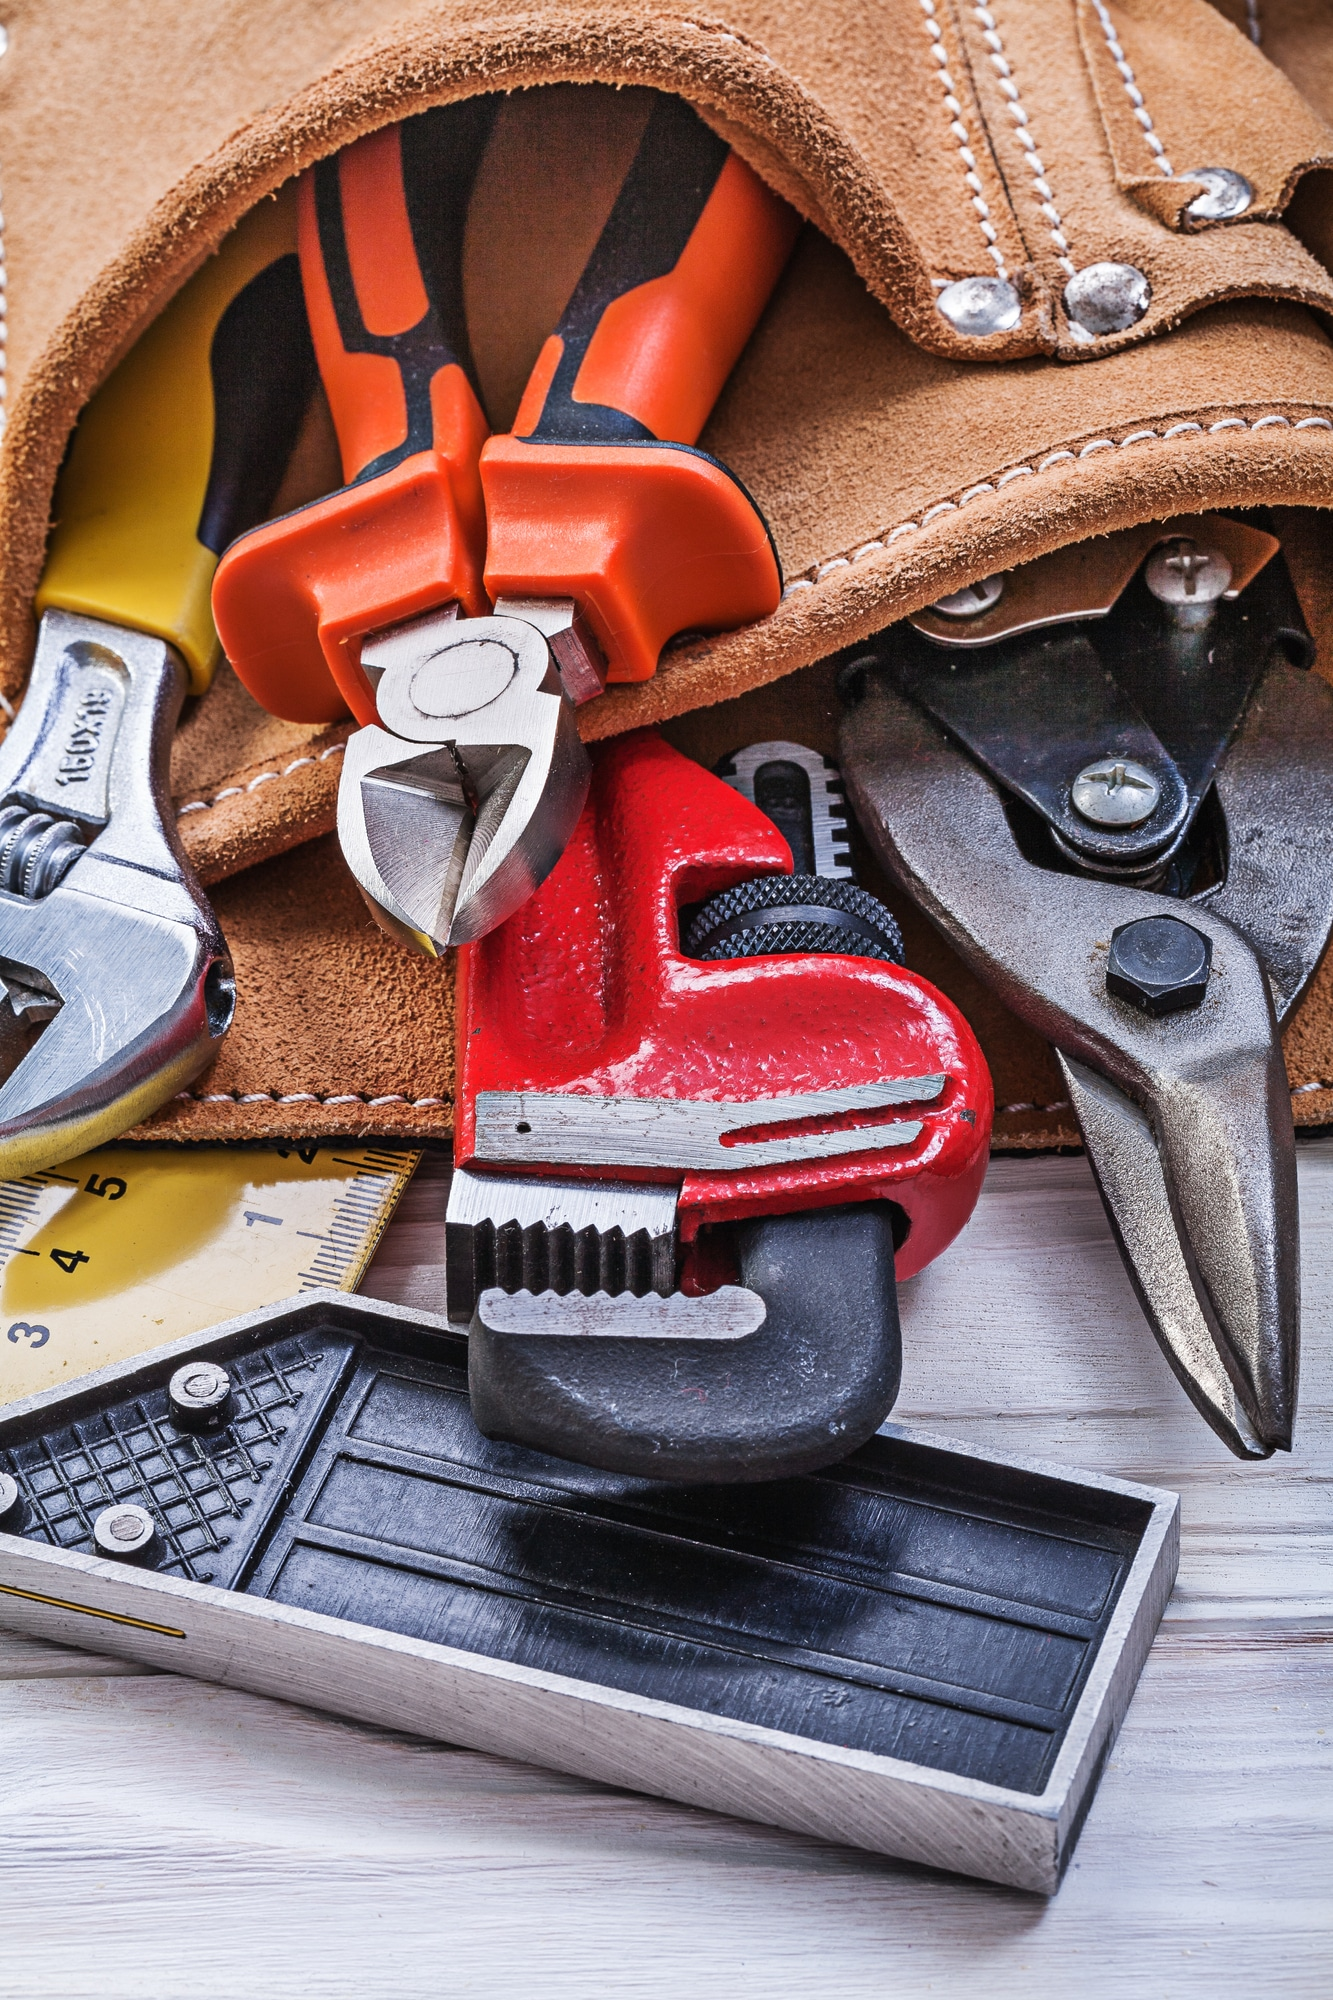 Are You Someone Who Loves Working With Tools? Here Are Some Helpful Tips